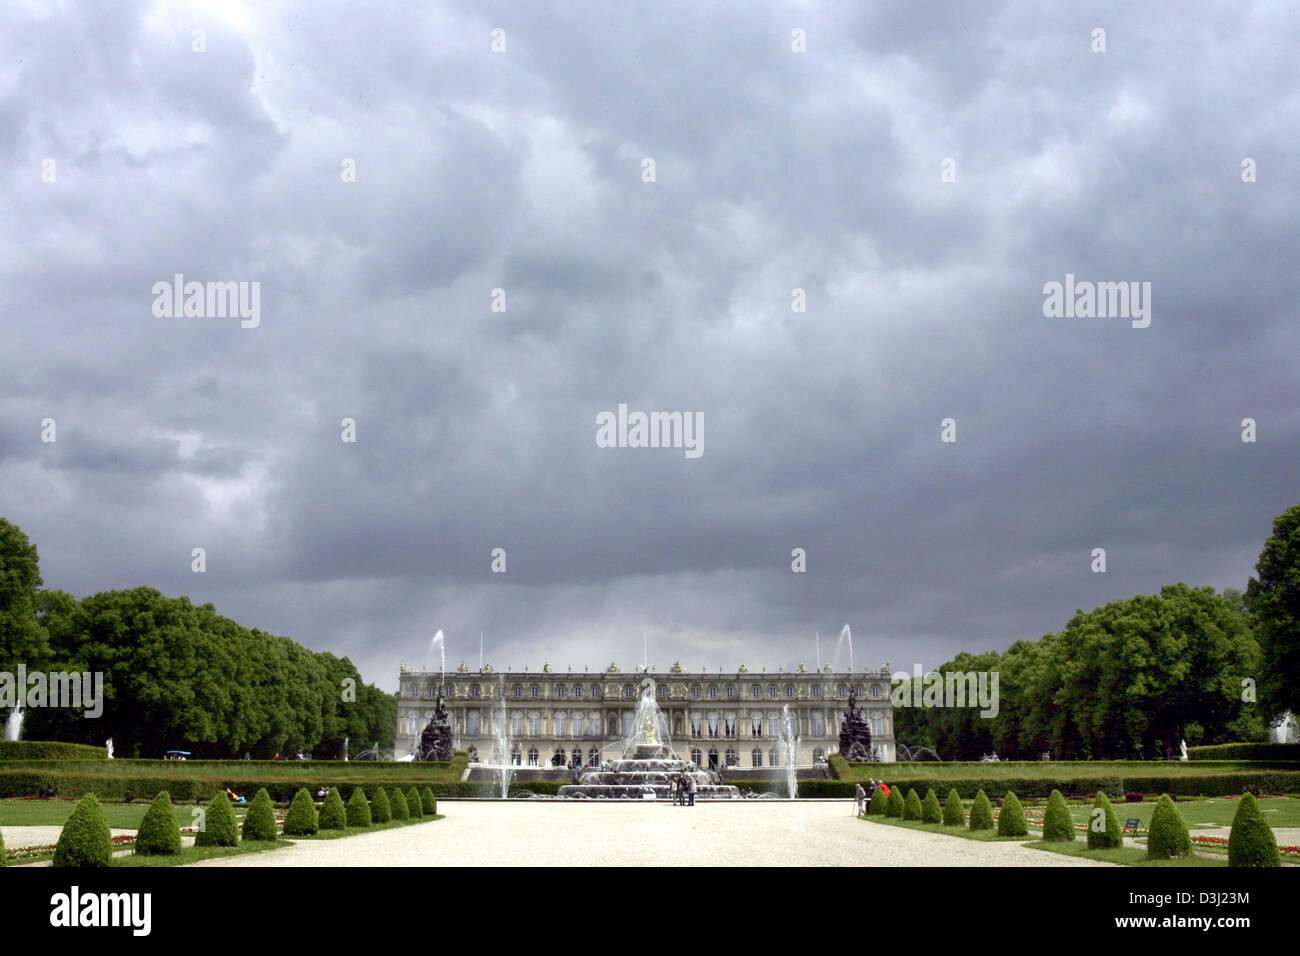 (dpa) - A view of the garden and Chateau Herrenchiemsee on Herreninsel island on Lake Chiemsee in Herrenchiemsee, - Stock Image